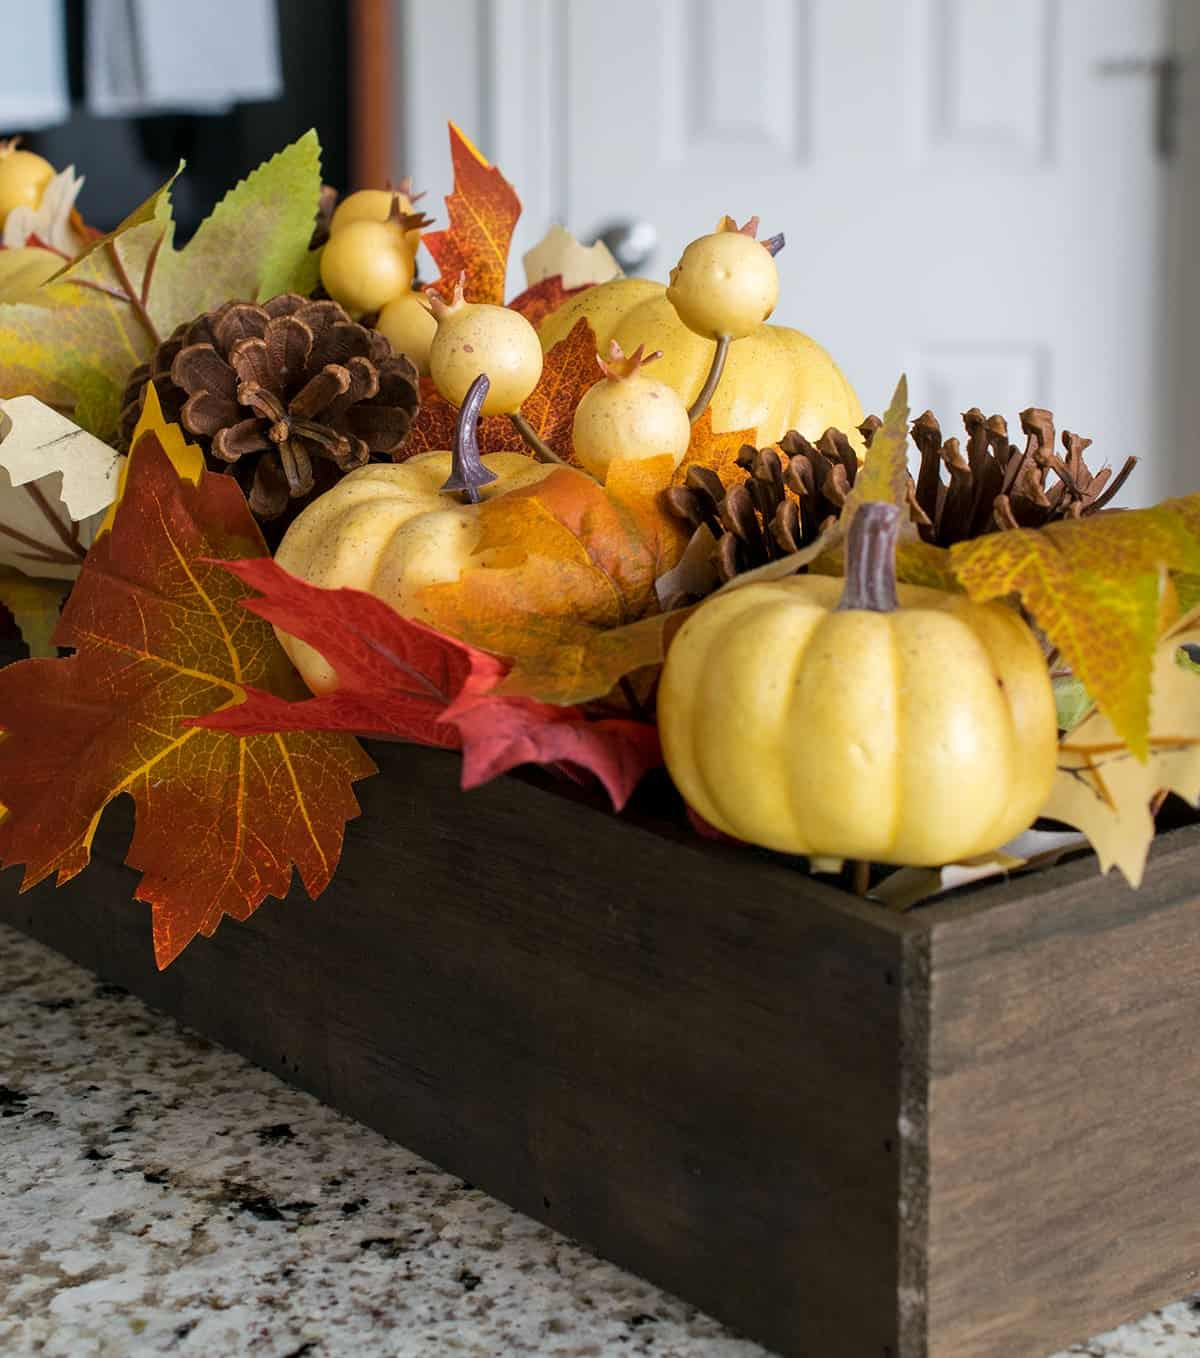 Fall inspired centerpiece on breakfast bar with small pumpkins, pinecones, and artificial autumn leaves.